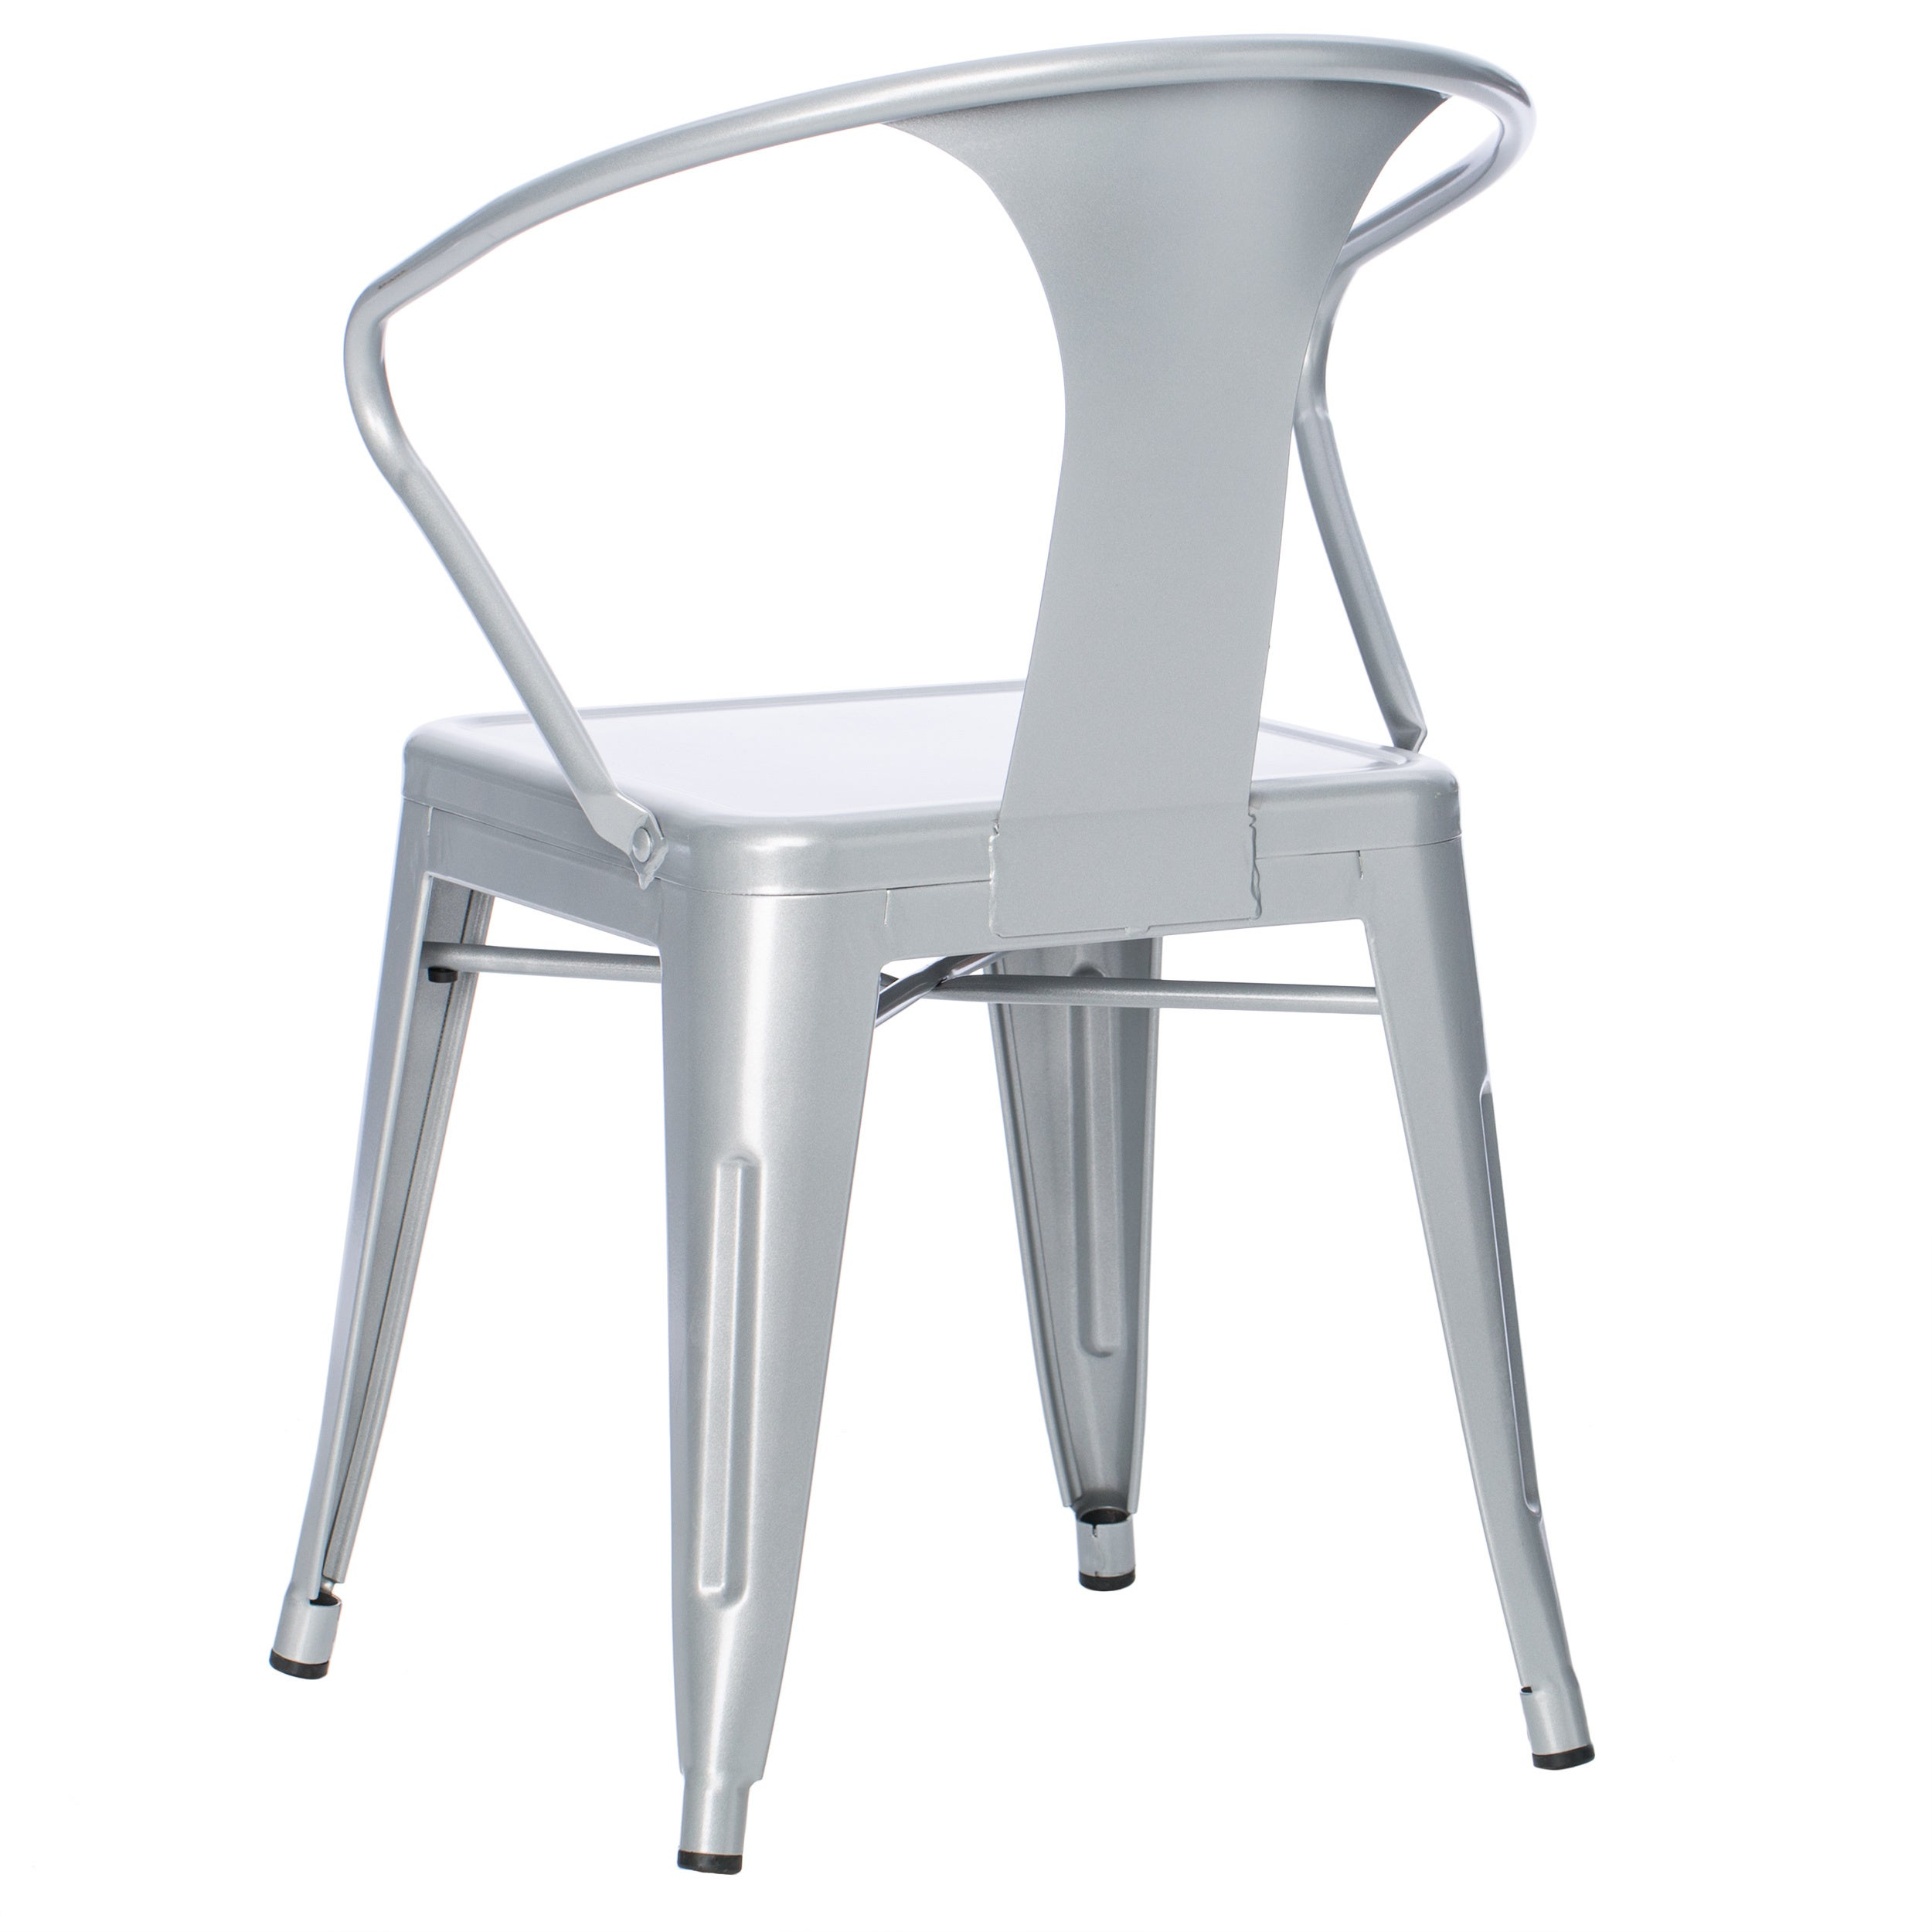 plastic kimbra chairs pin commercial chair stacking furniture